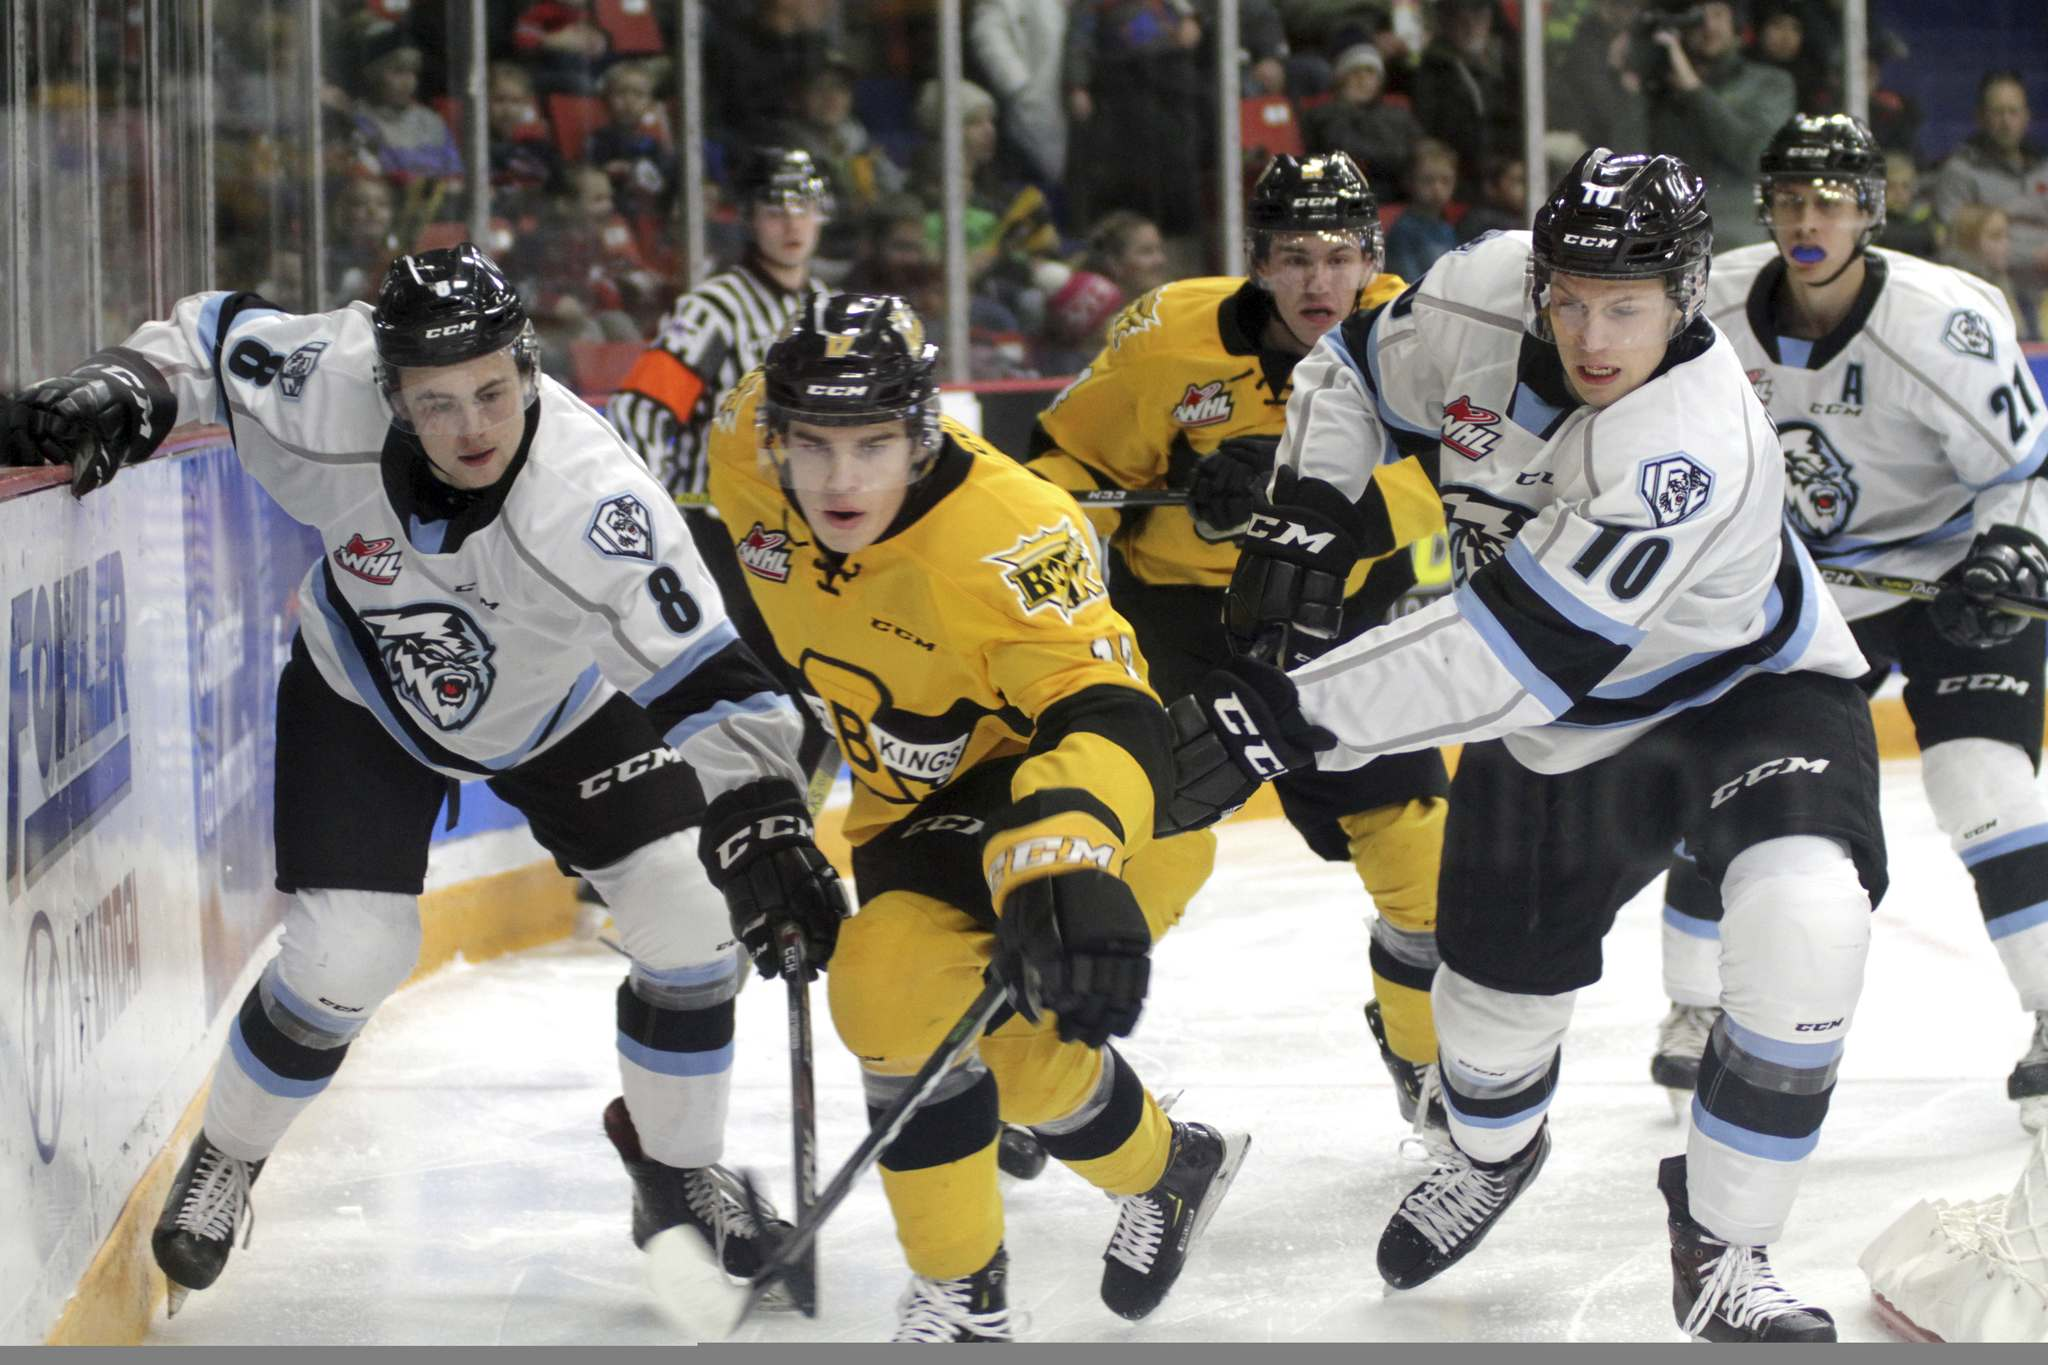 (Thomas Friesen/The Brandon Sun)</p><p>The Brandon Wheat Kings and the Winnipeg Ice will be taking part in the WHL's inaugural U.S. Prospects Draft on March 25.</p>